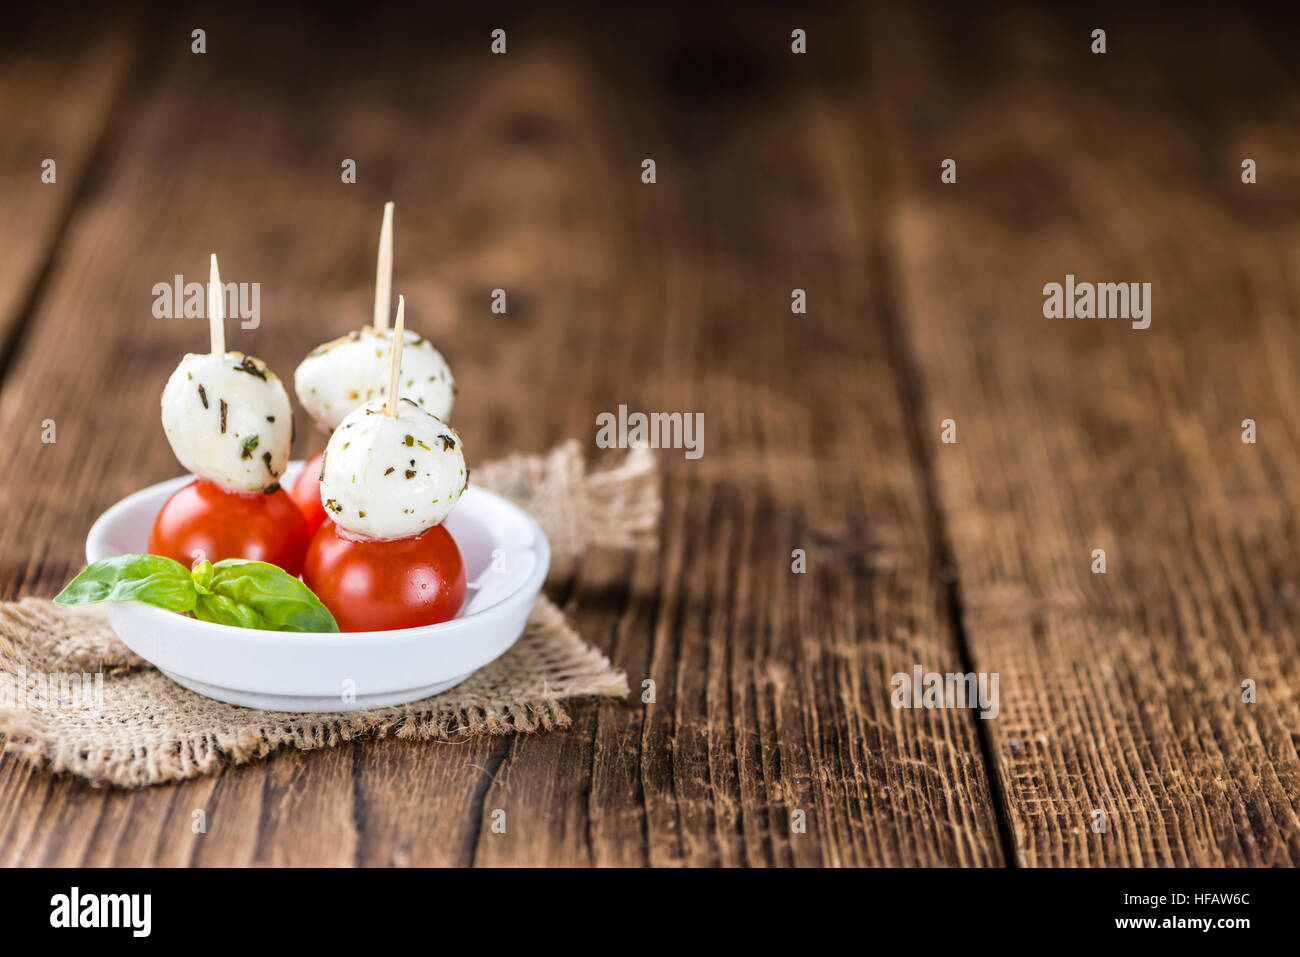 Mozzarella balls with Tomatoes (selective focus) on wooden background - Stock Image